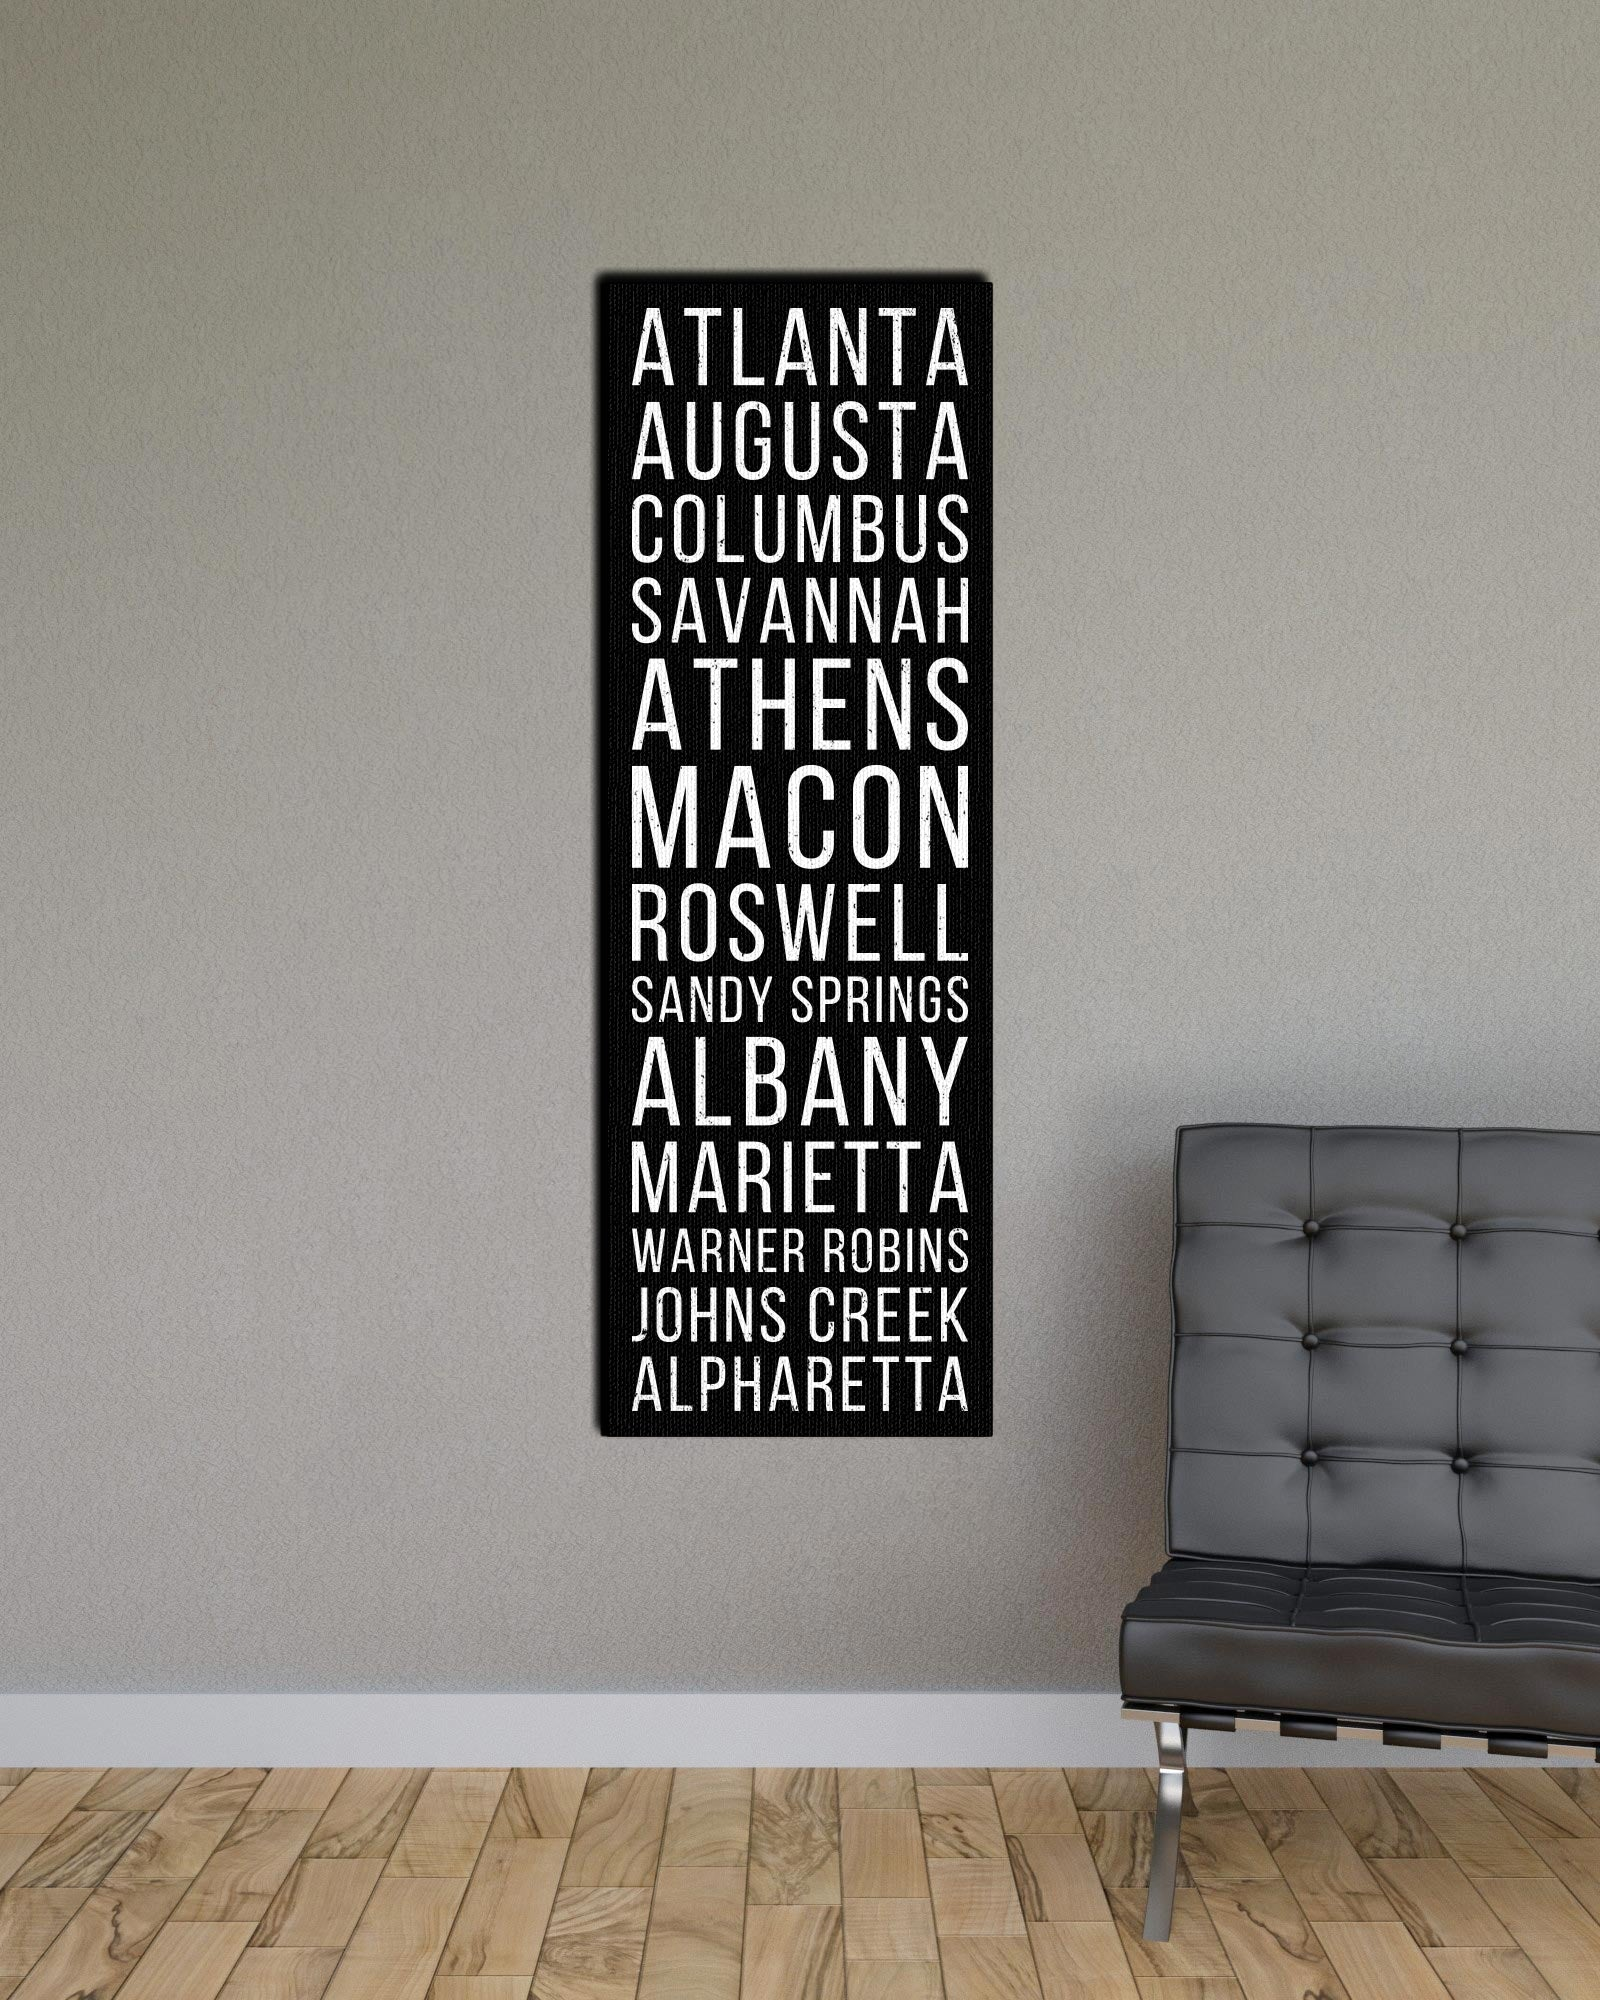 Georgia Atlanta Augusta Columbus Bus Scroll Subway Print